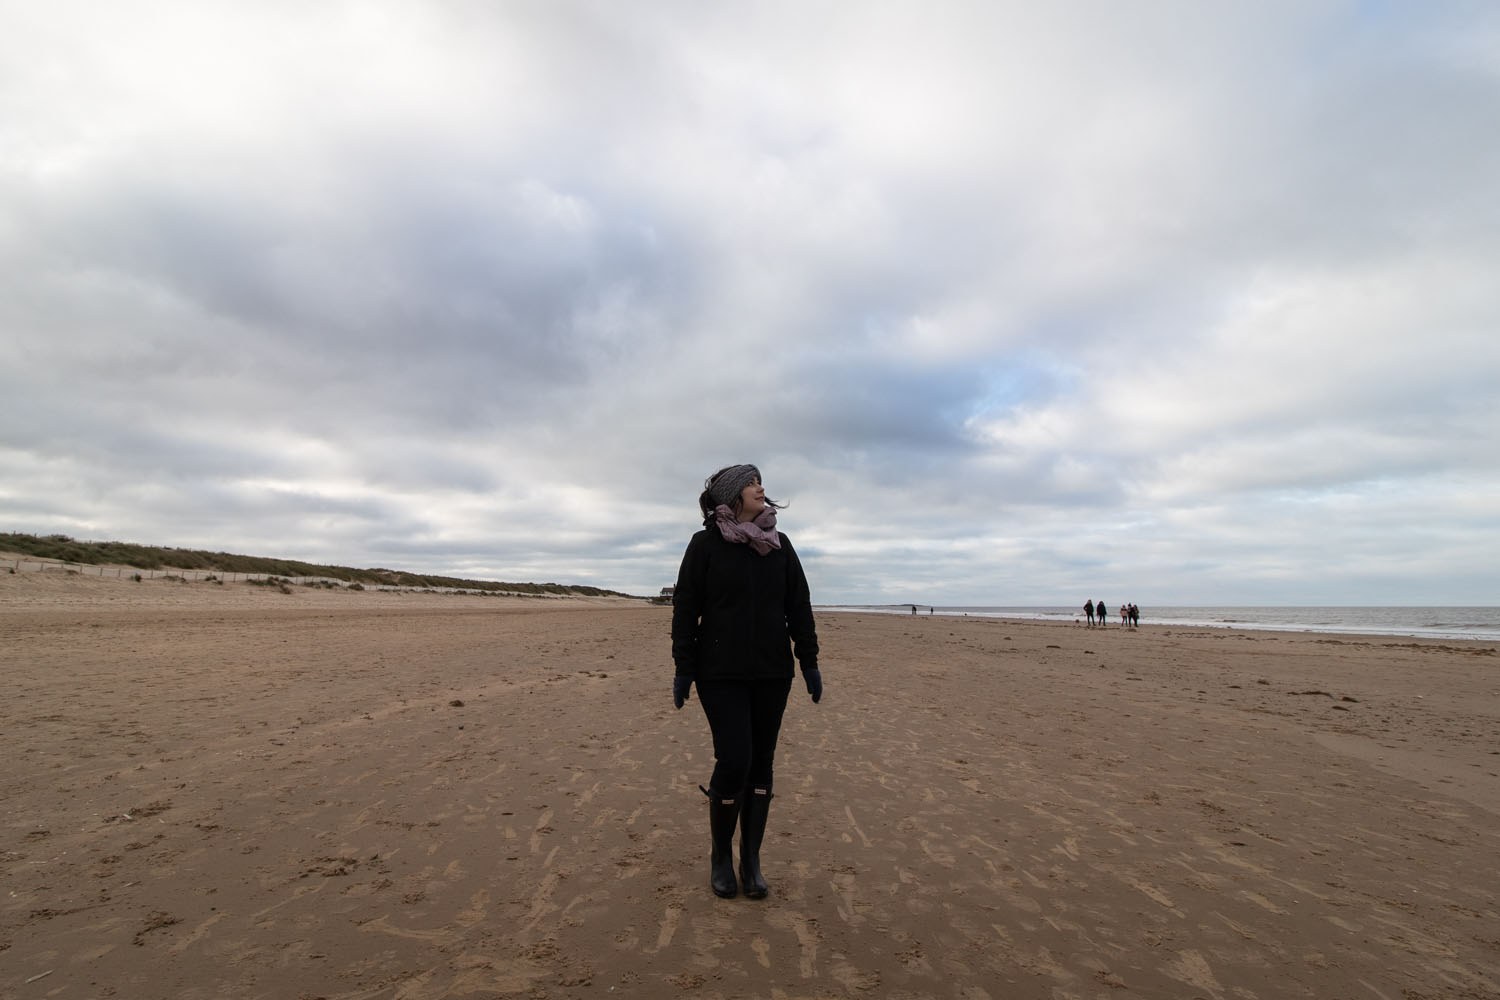 woman stood on beach looking out to sea